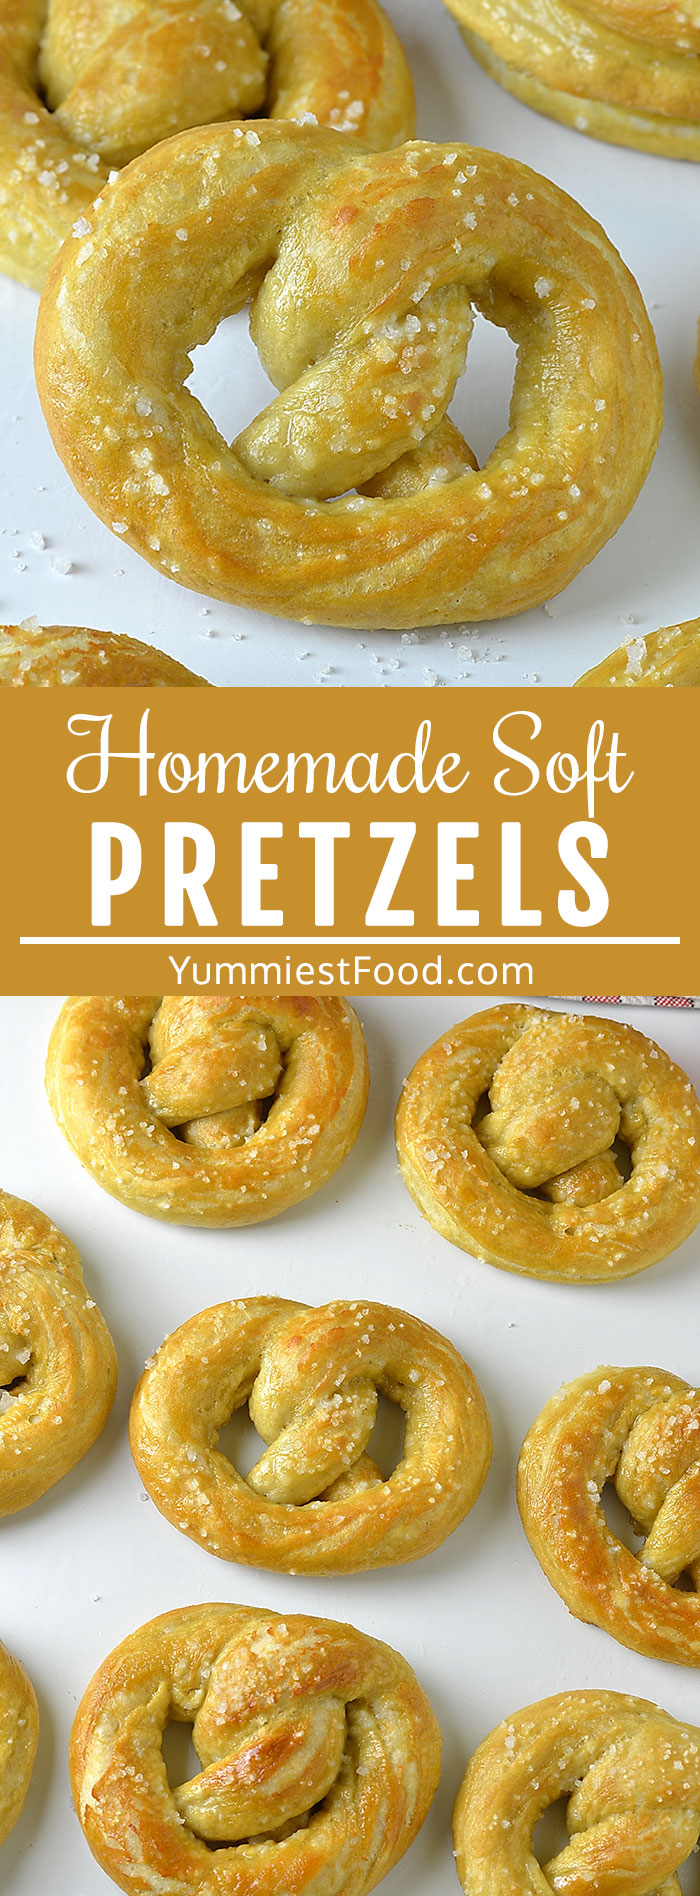 Homemade Soft Pretzels are easy to make and the perfect party food! Salty, buttery and warm, soft pretzels are perfect for Game Day or just for a fun afternoon snack! #gameday #gamedayfood #gamedayrecipes #gamedayappetizers #superbowlrecipes #appetizers #appetizerseasy #breakfast